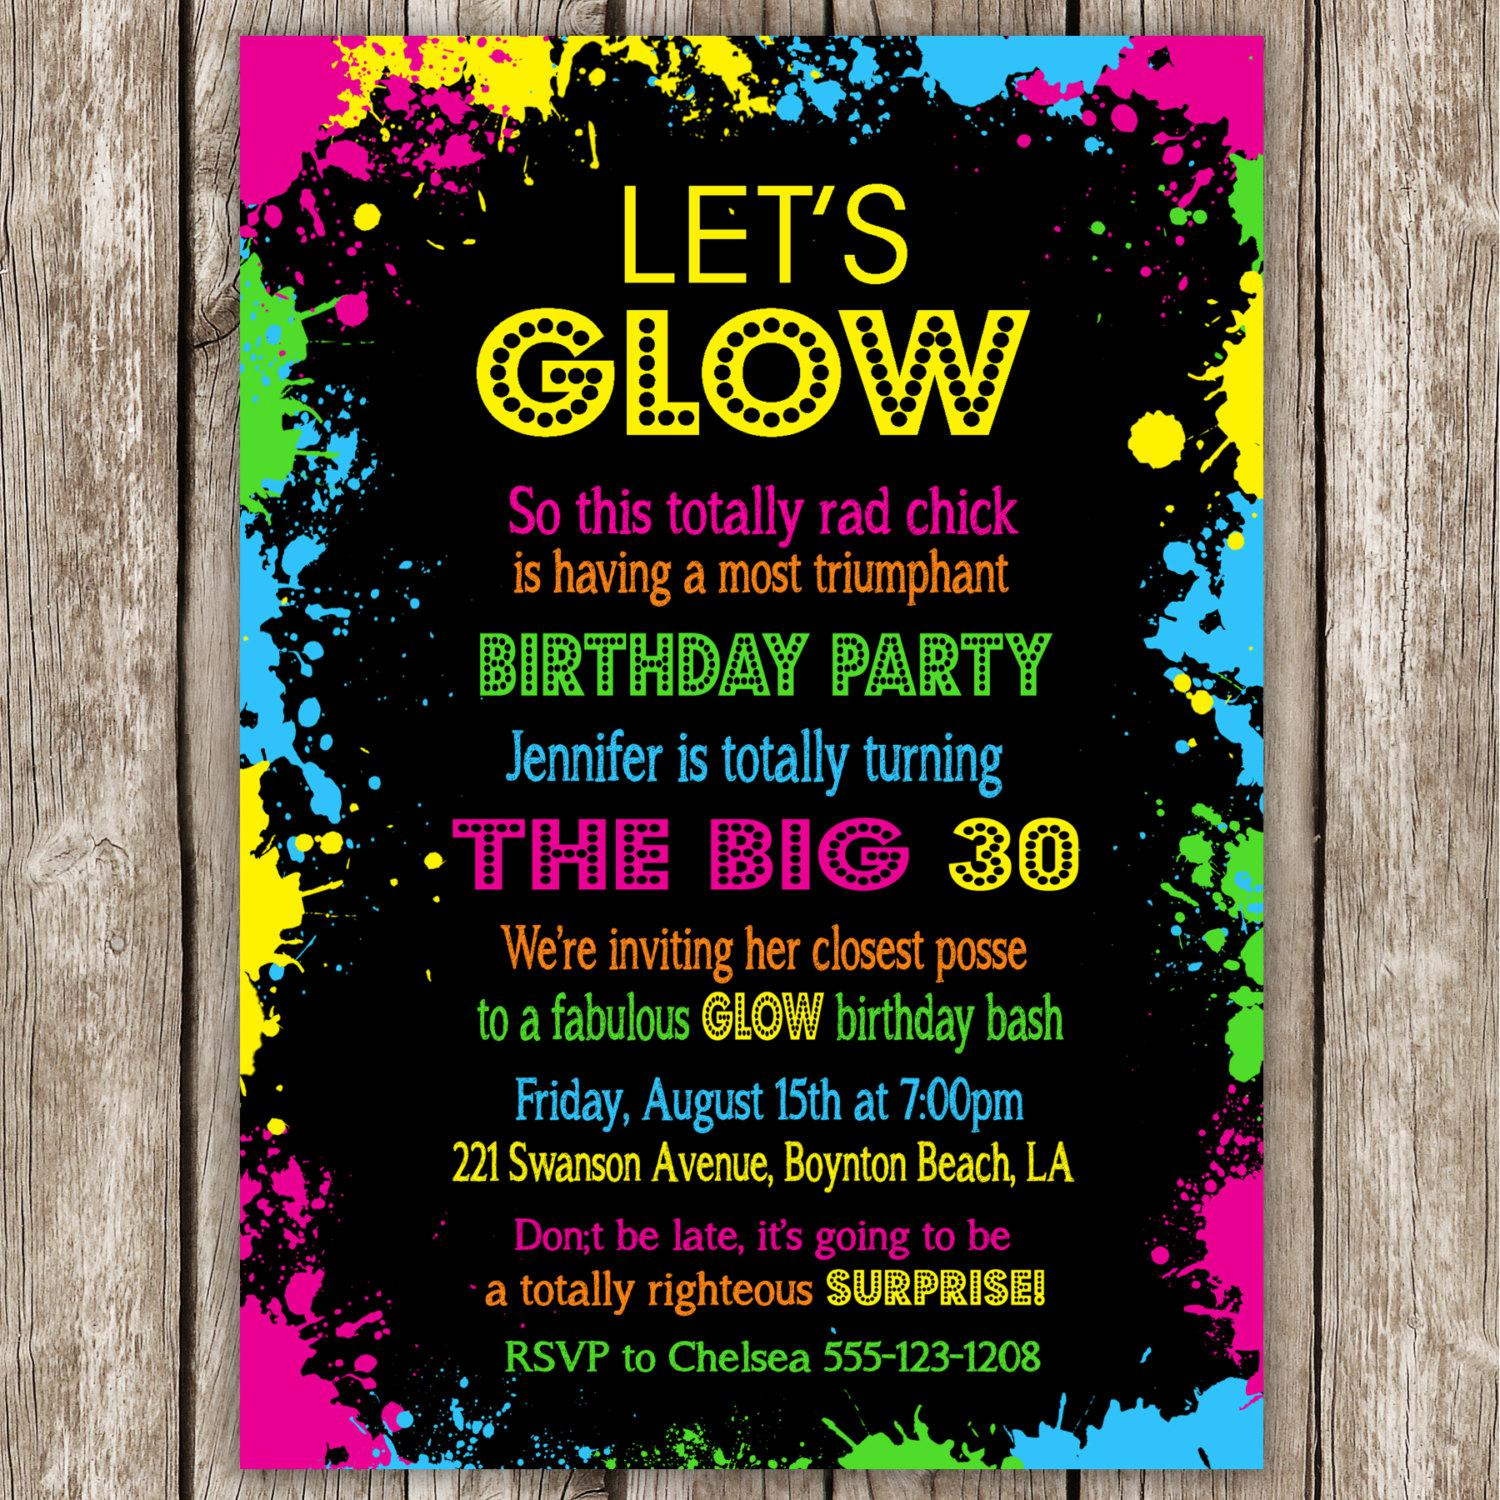 dance birthday party invitation templates ; dance-party-invitations-with-chic-Party-Invitation-Templates-as-a-result-of-an-application-using-a-felicitous-concept-5